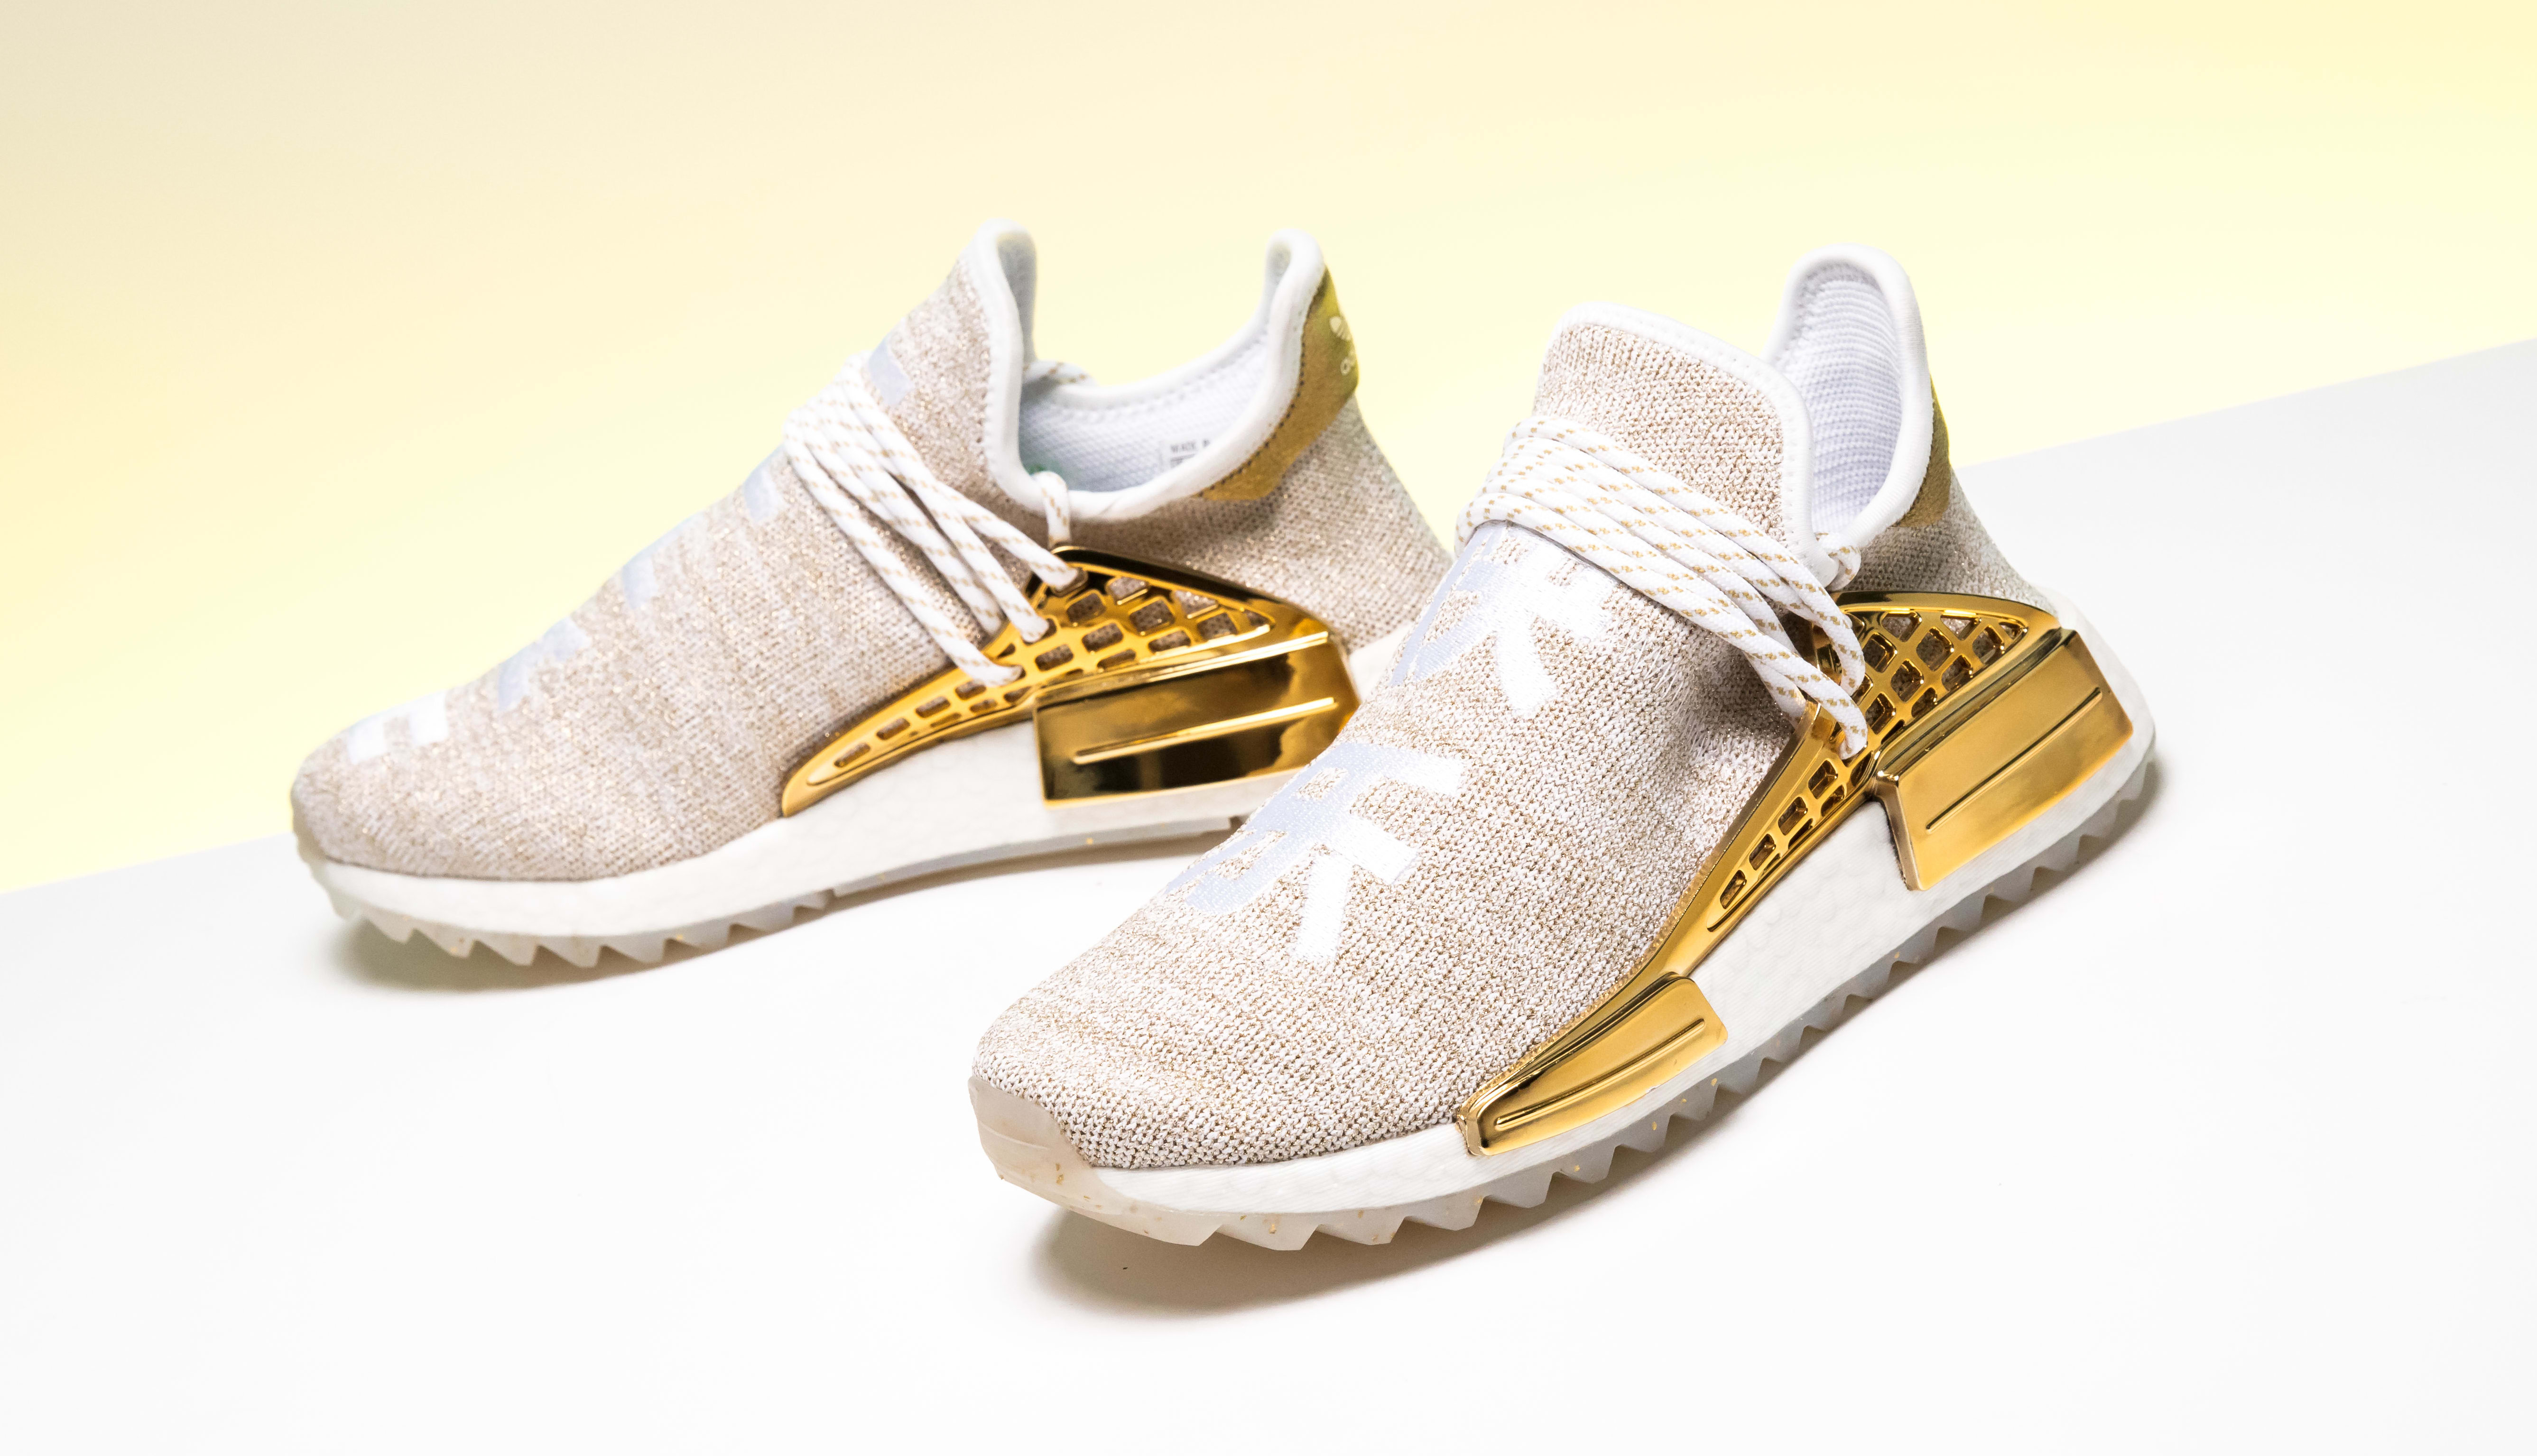 Pharrell Williams x Adidas NMD Hu China Exclusive 'Happy' Gold F99762 (Side Pair)